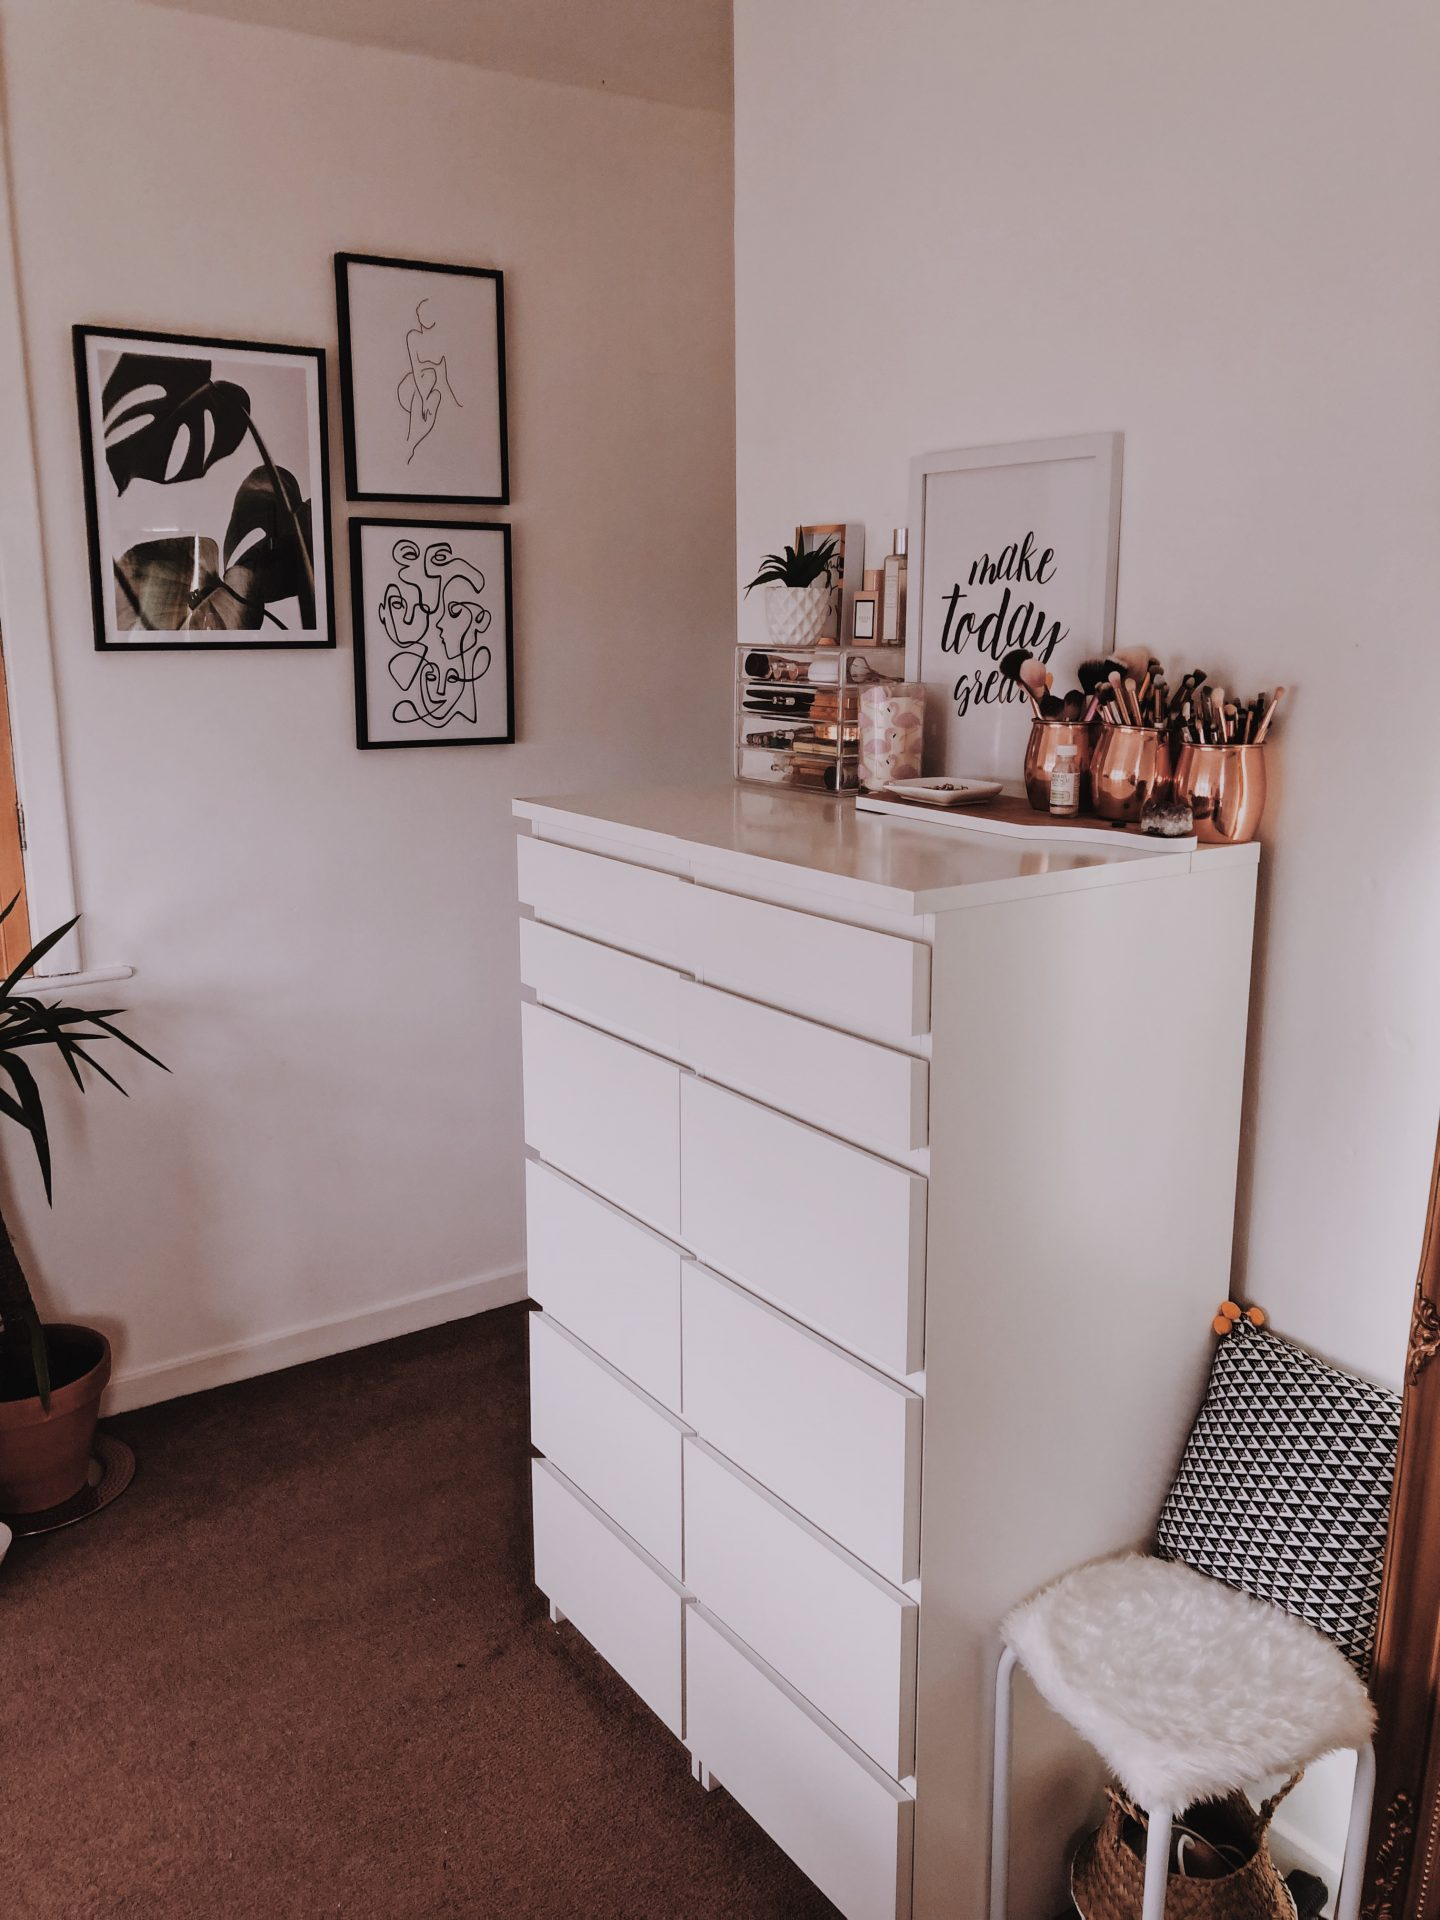 Updating My Space